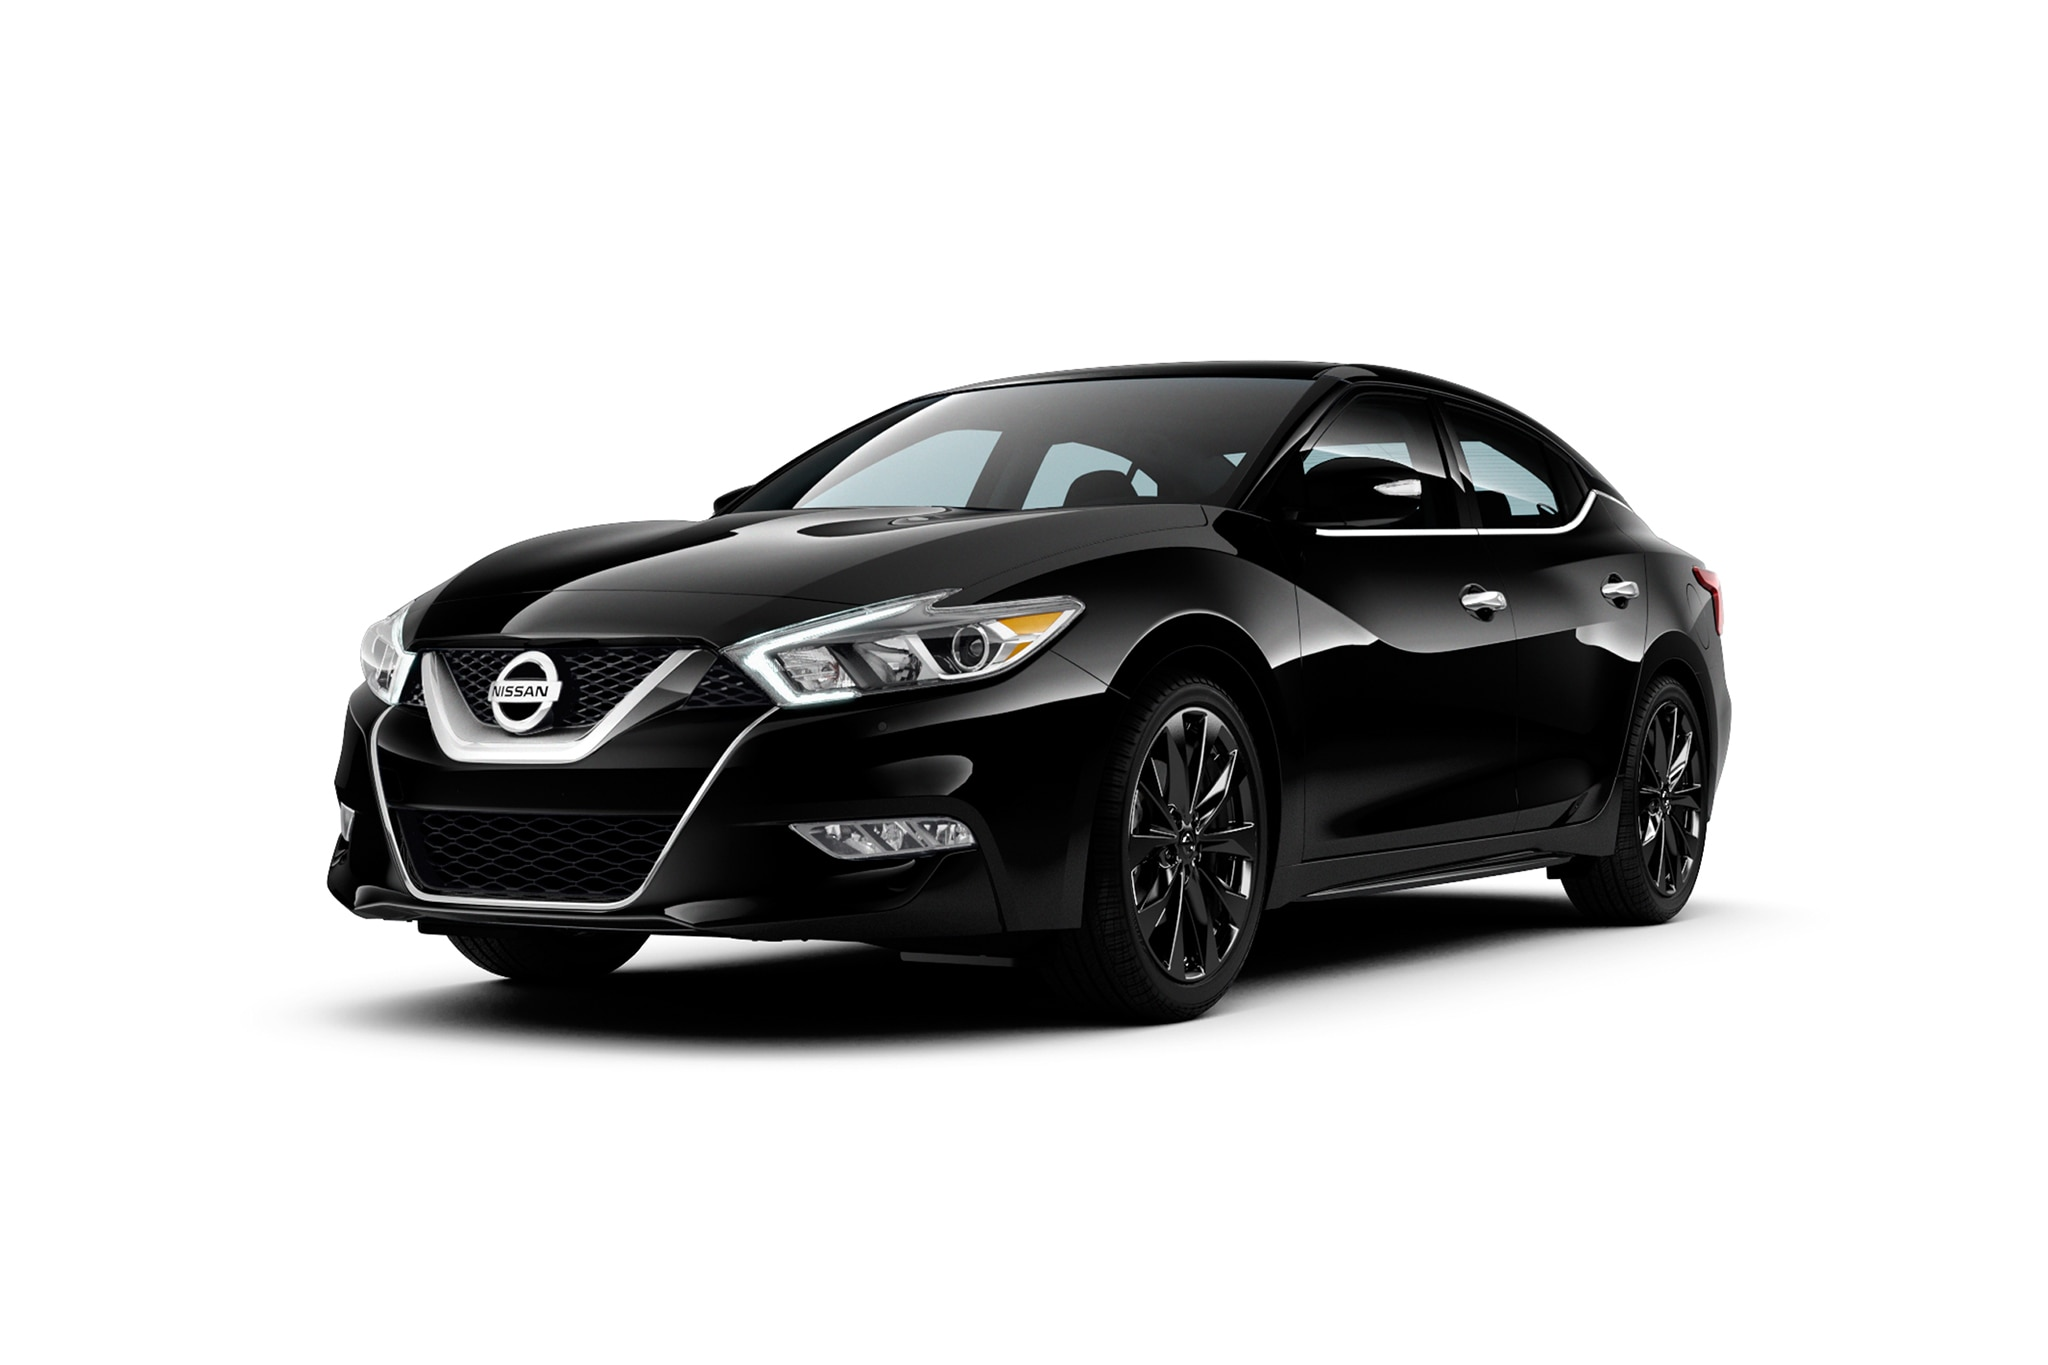 2018 nissan altima sr midnight edition 0-60